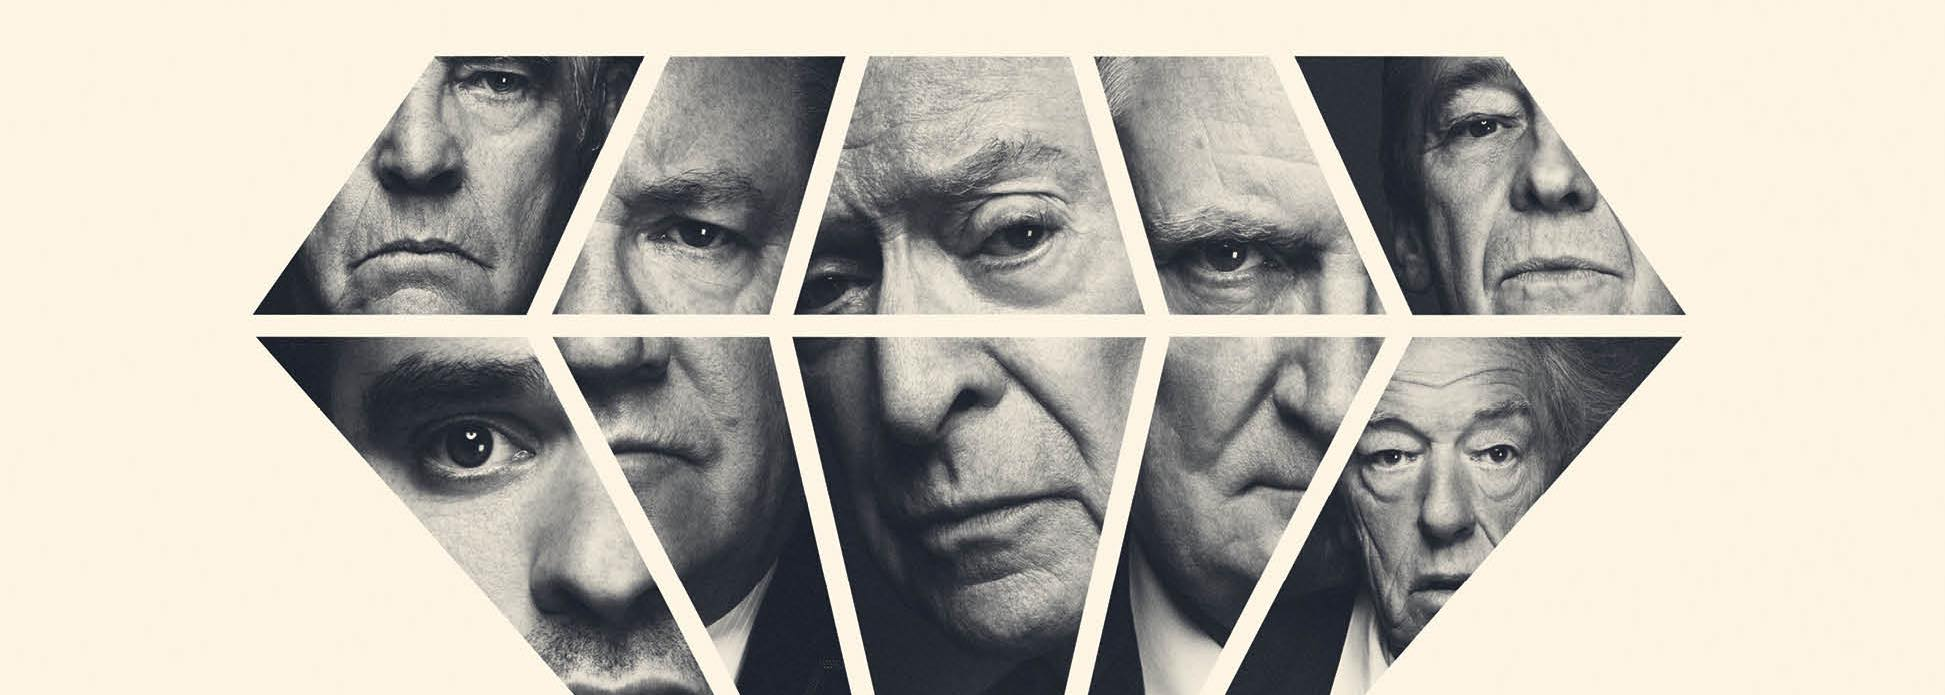 **KING OF THIEVES – FIRST TRAILER RELEASED**